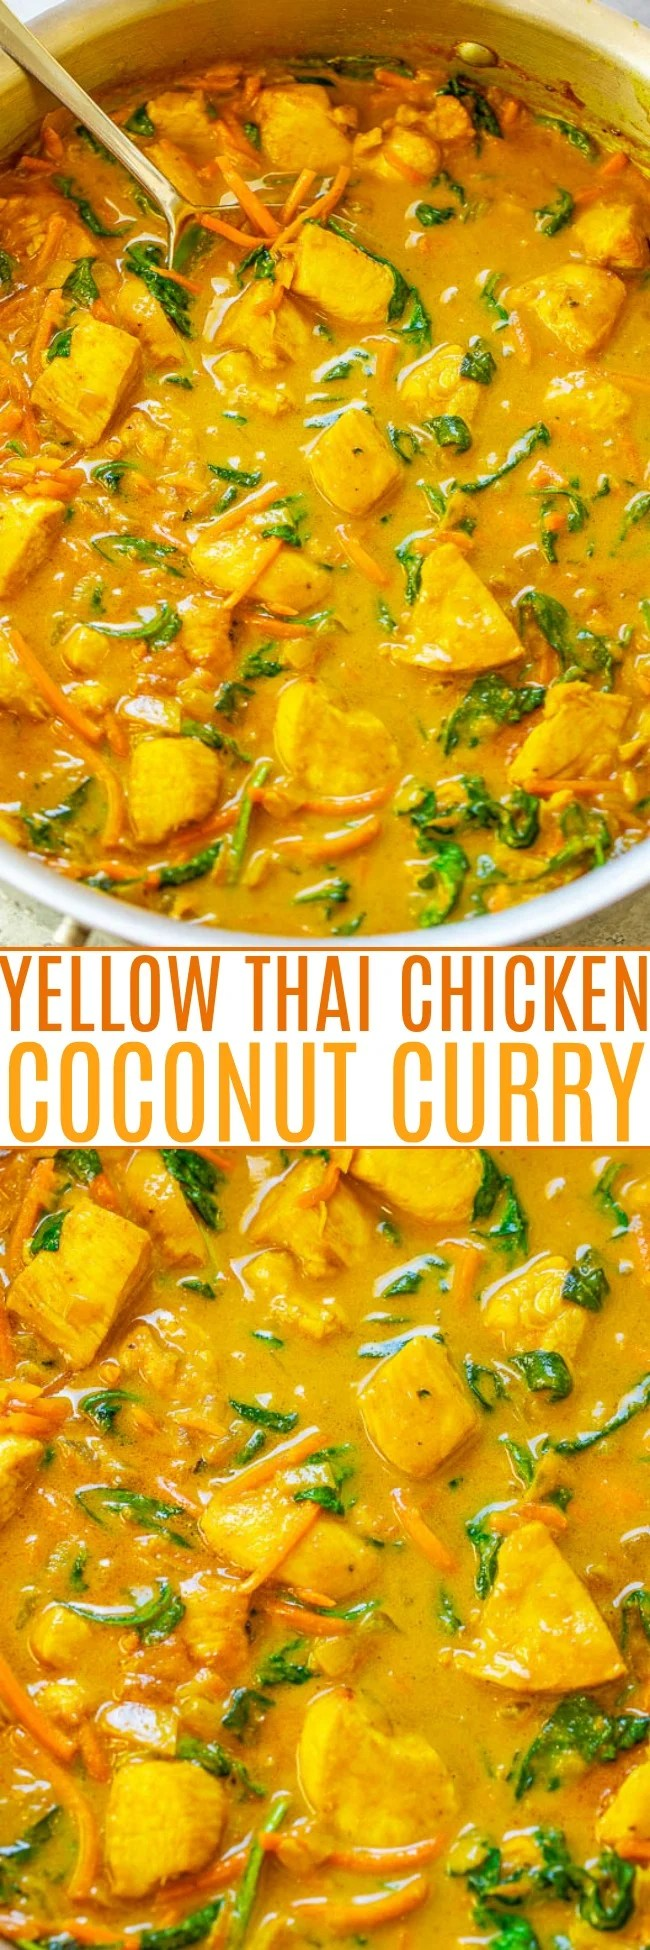 Yellow Thai Chicken Coconut Curry - Better-than-takeout yellow curry is EASY and ready in 25 minutes!! Healthy comfort food with the PERFECT amount of heat and lots of textures and flavors in every bite! Impress your friends and family and make this DELICIOUS curry at home!!